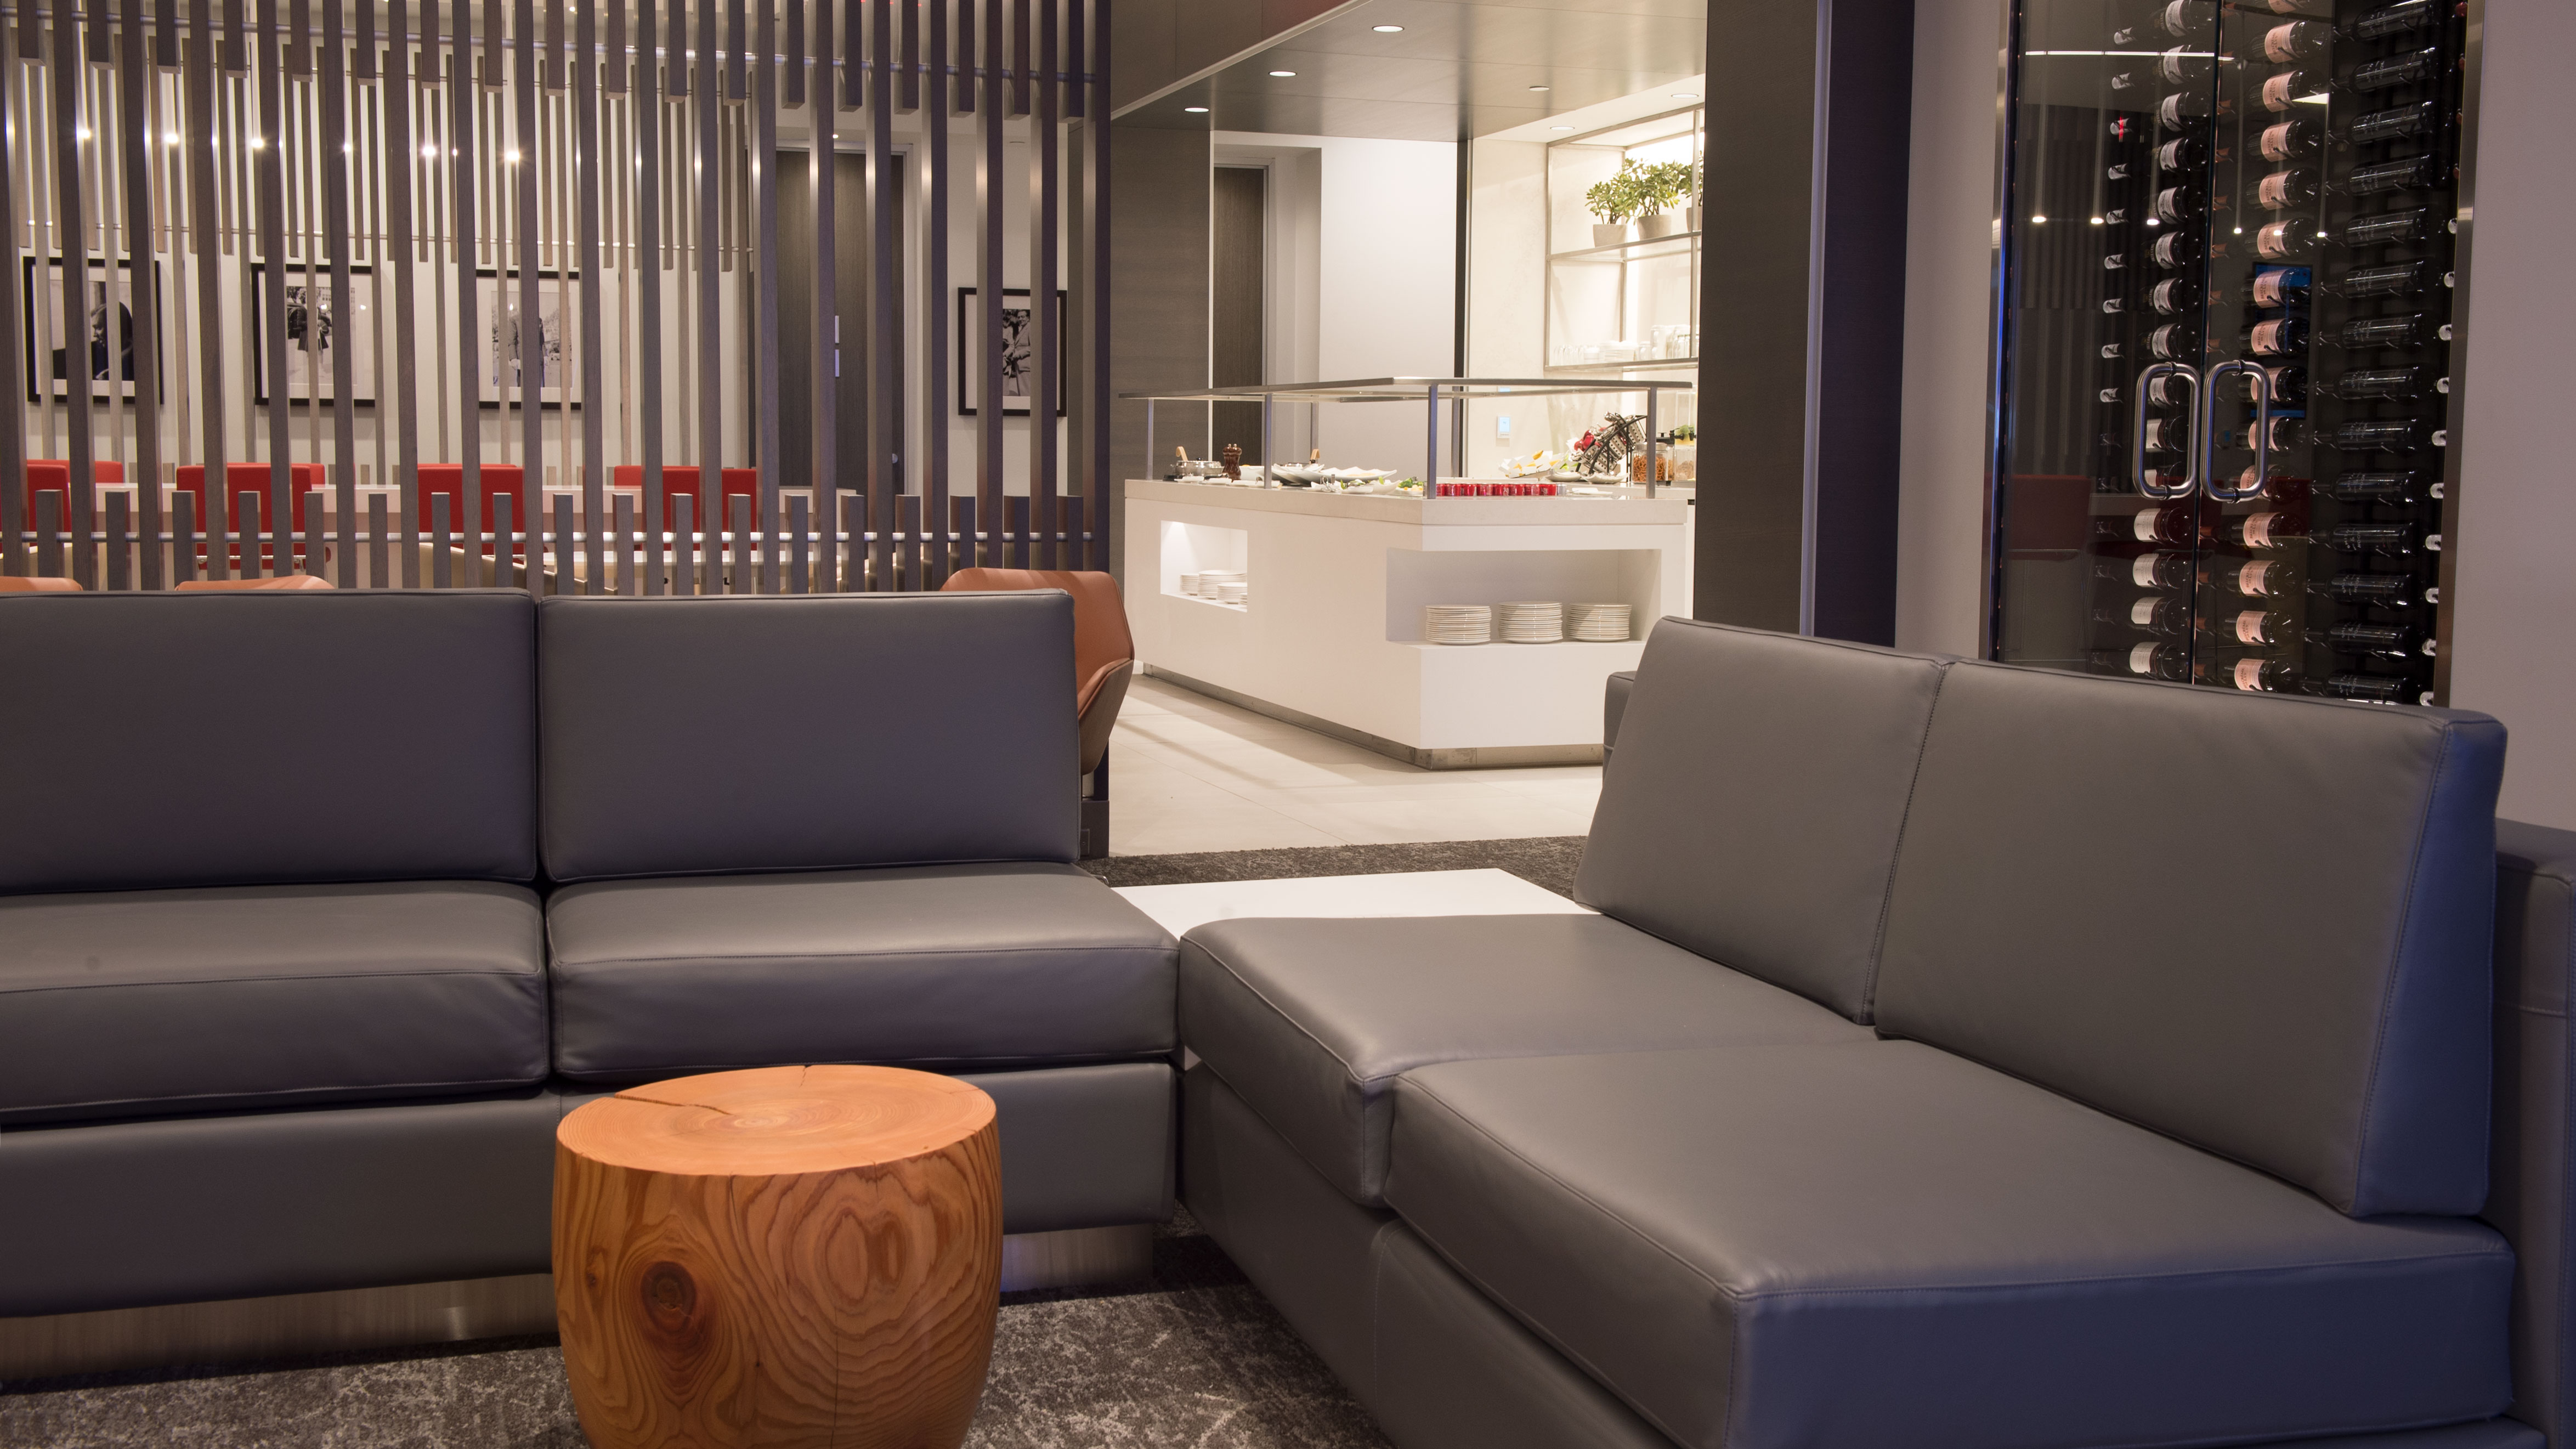 How To Design An Airport Lounge Cnn Travel